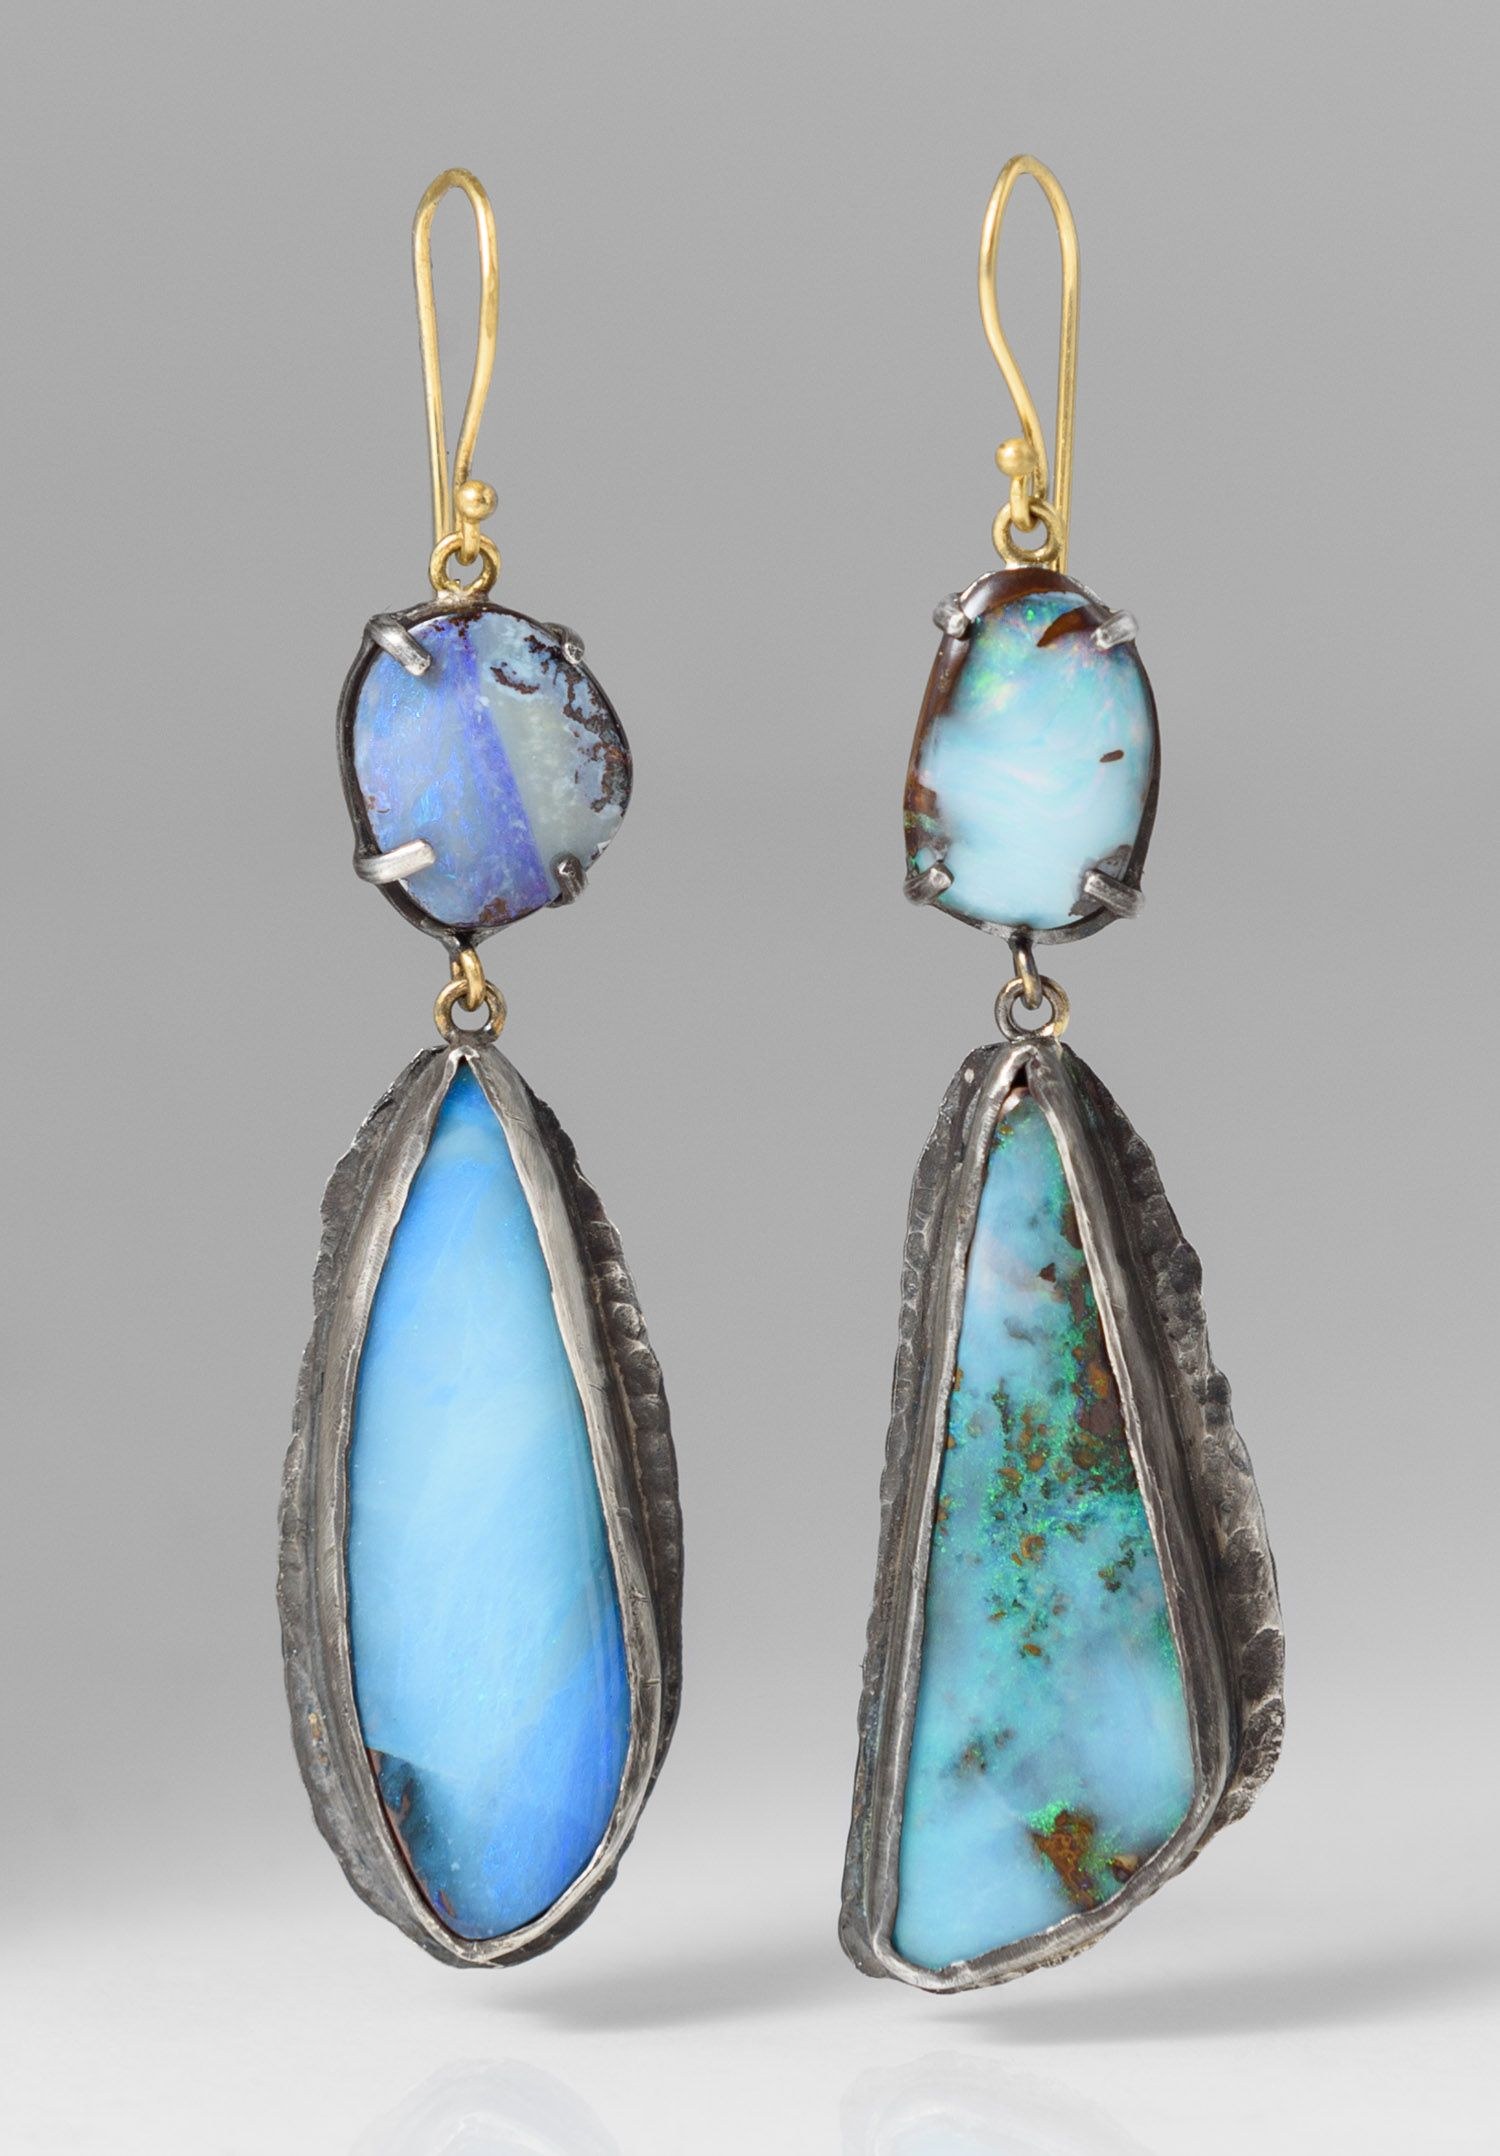 elhanati earring shop orit opal earrings